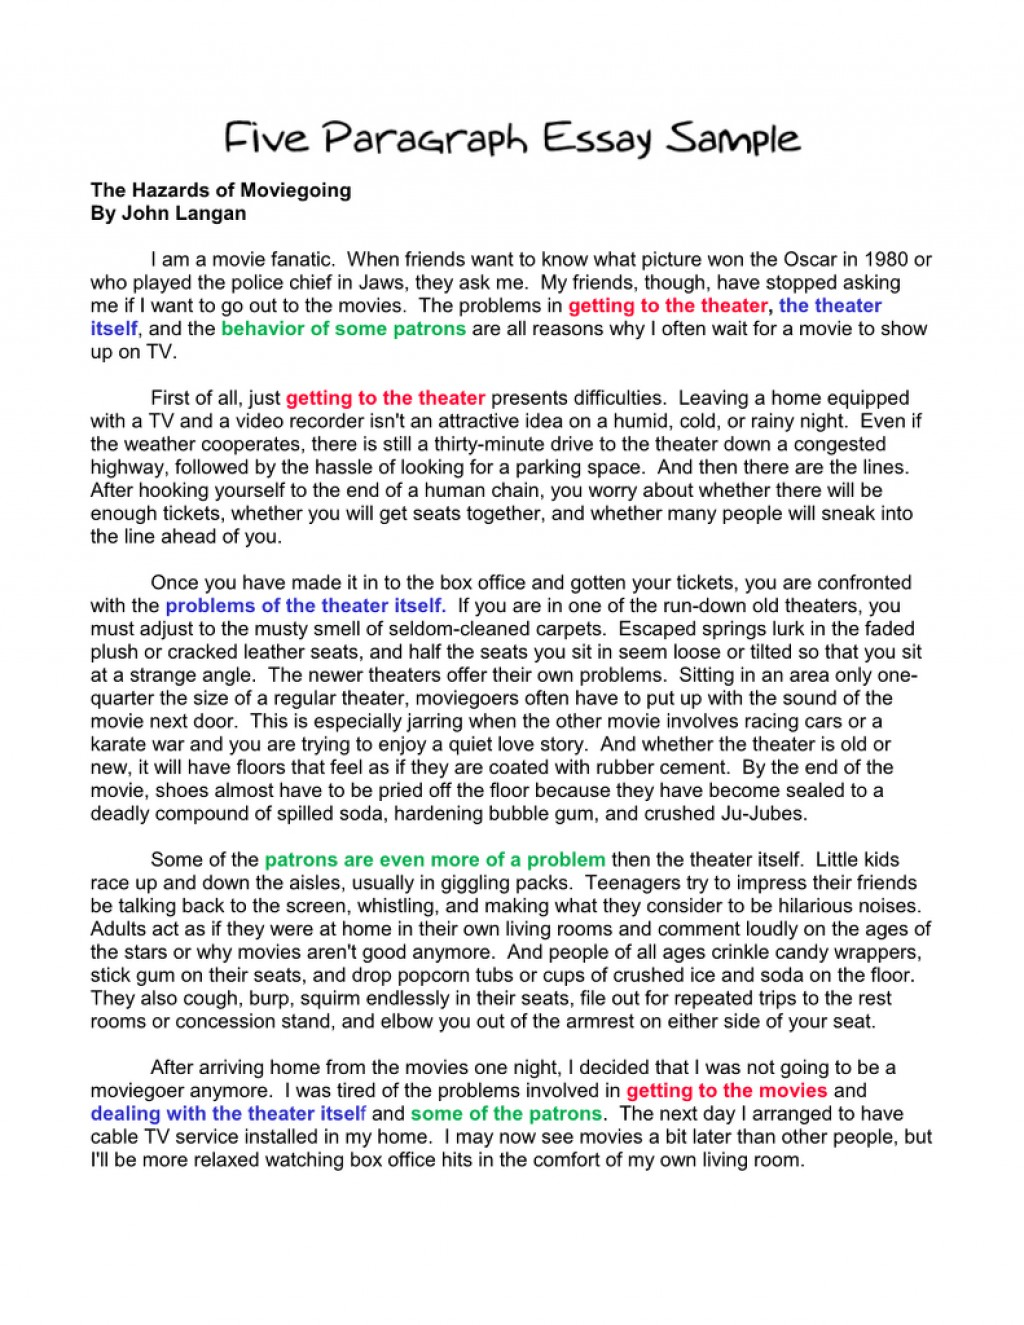 002 Sample Paragraph Essay Ideas Of Conclusion Format Research Paper How To Start Creative Example Stupendous 5 Camping Pdf For 4th Grade Large